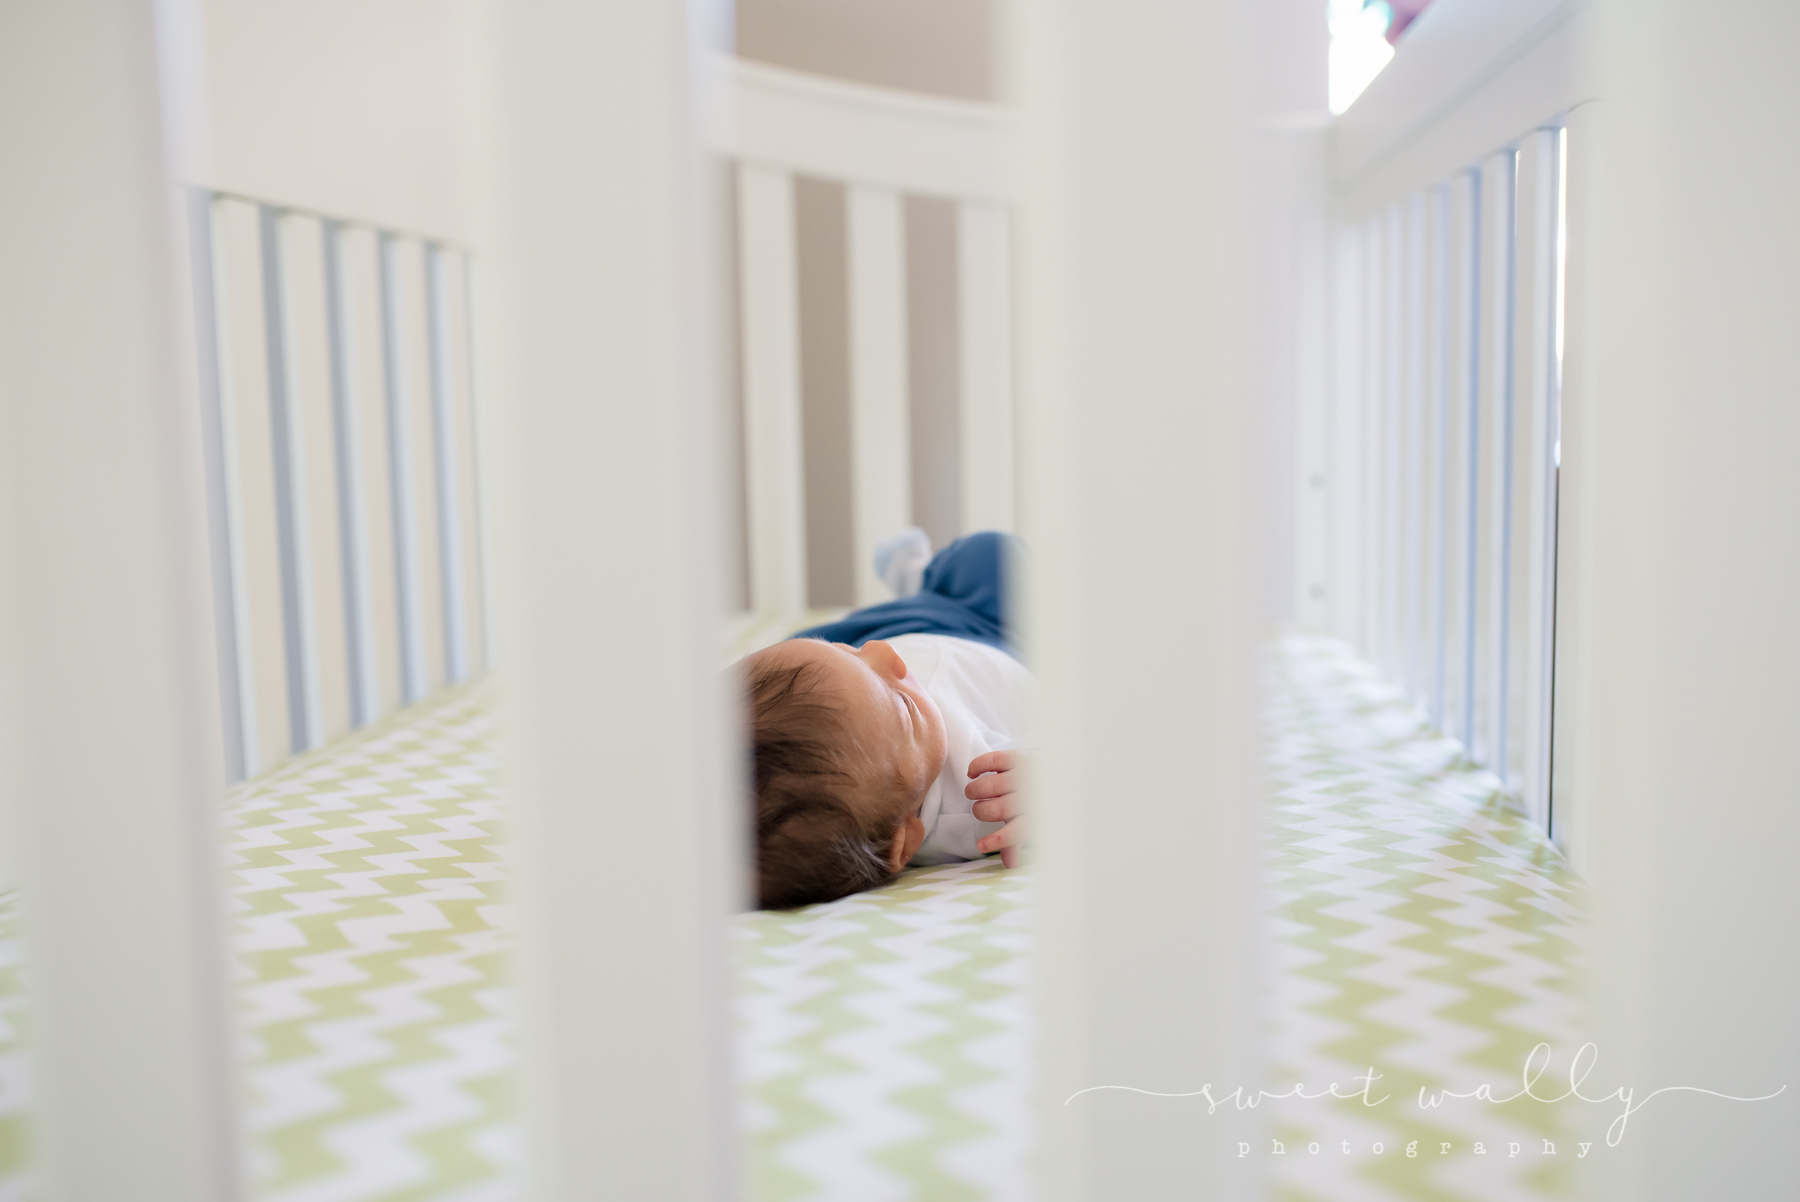 One day he'll outgrow this crib... | Lifestyle Newborn Session | Sweet Wally Photography in Nashville, TN